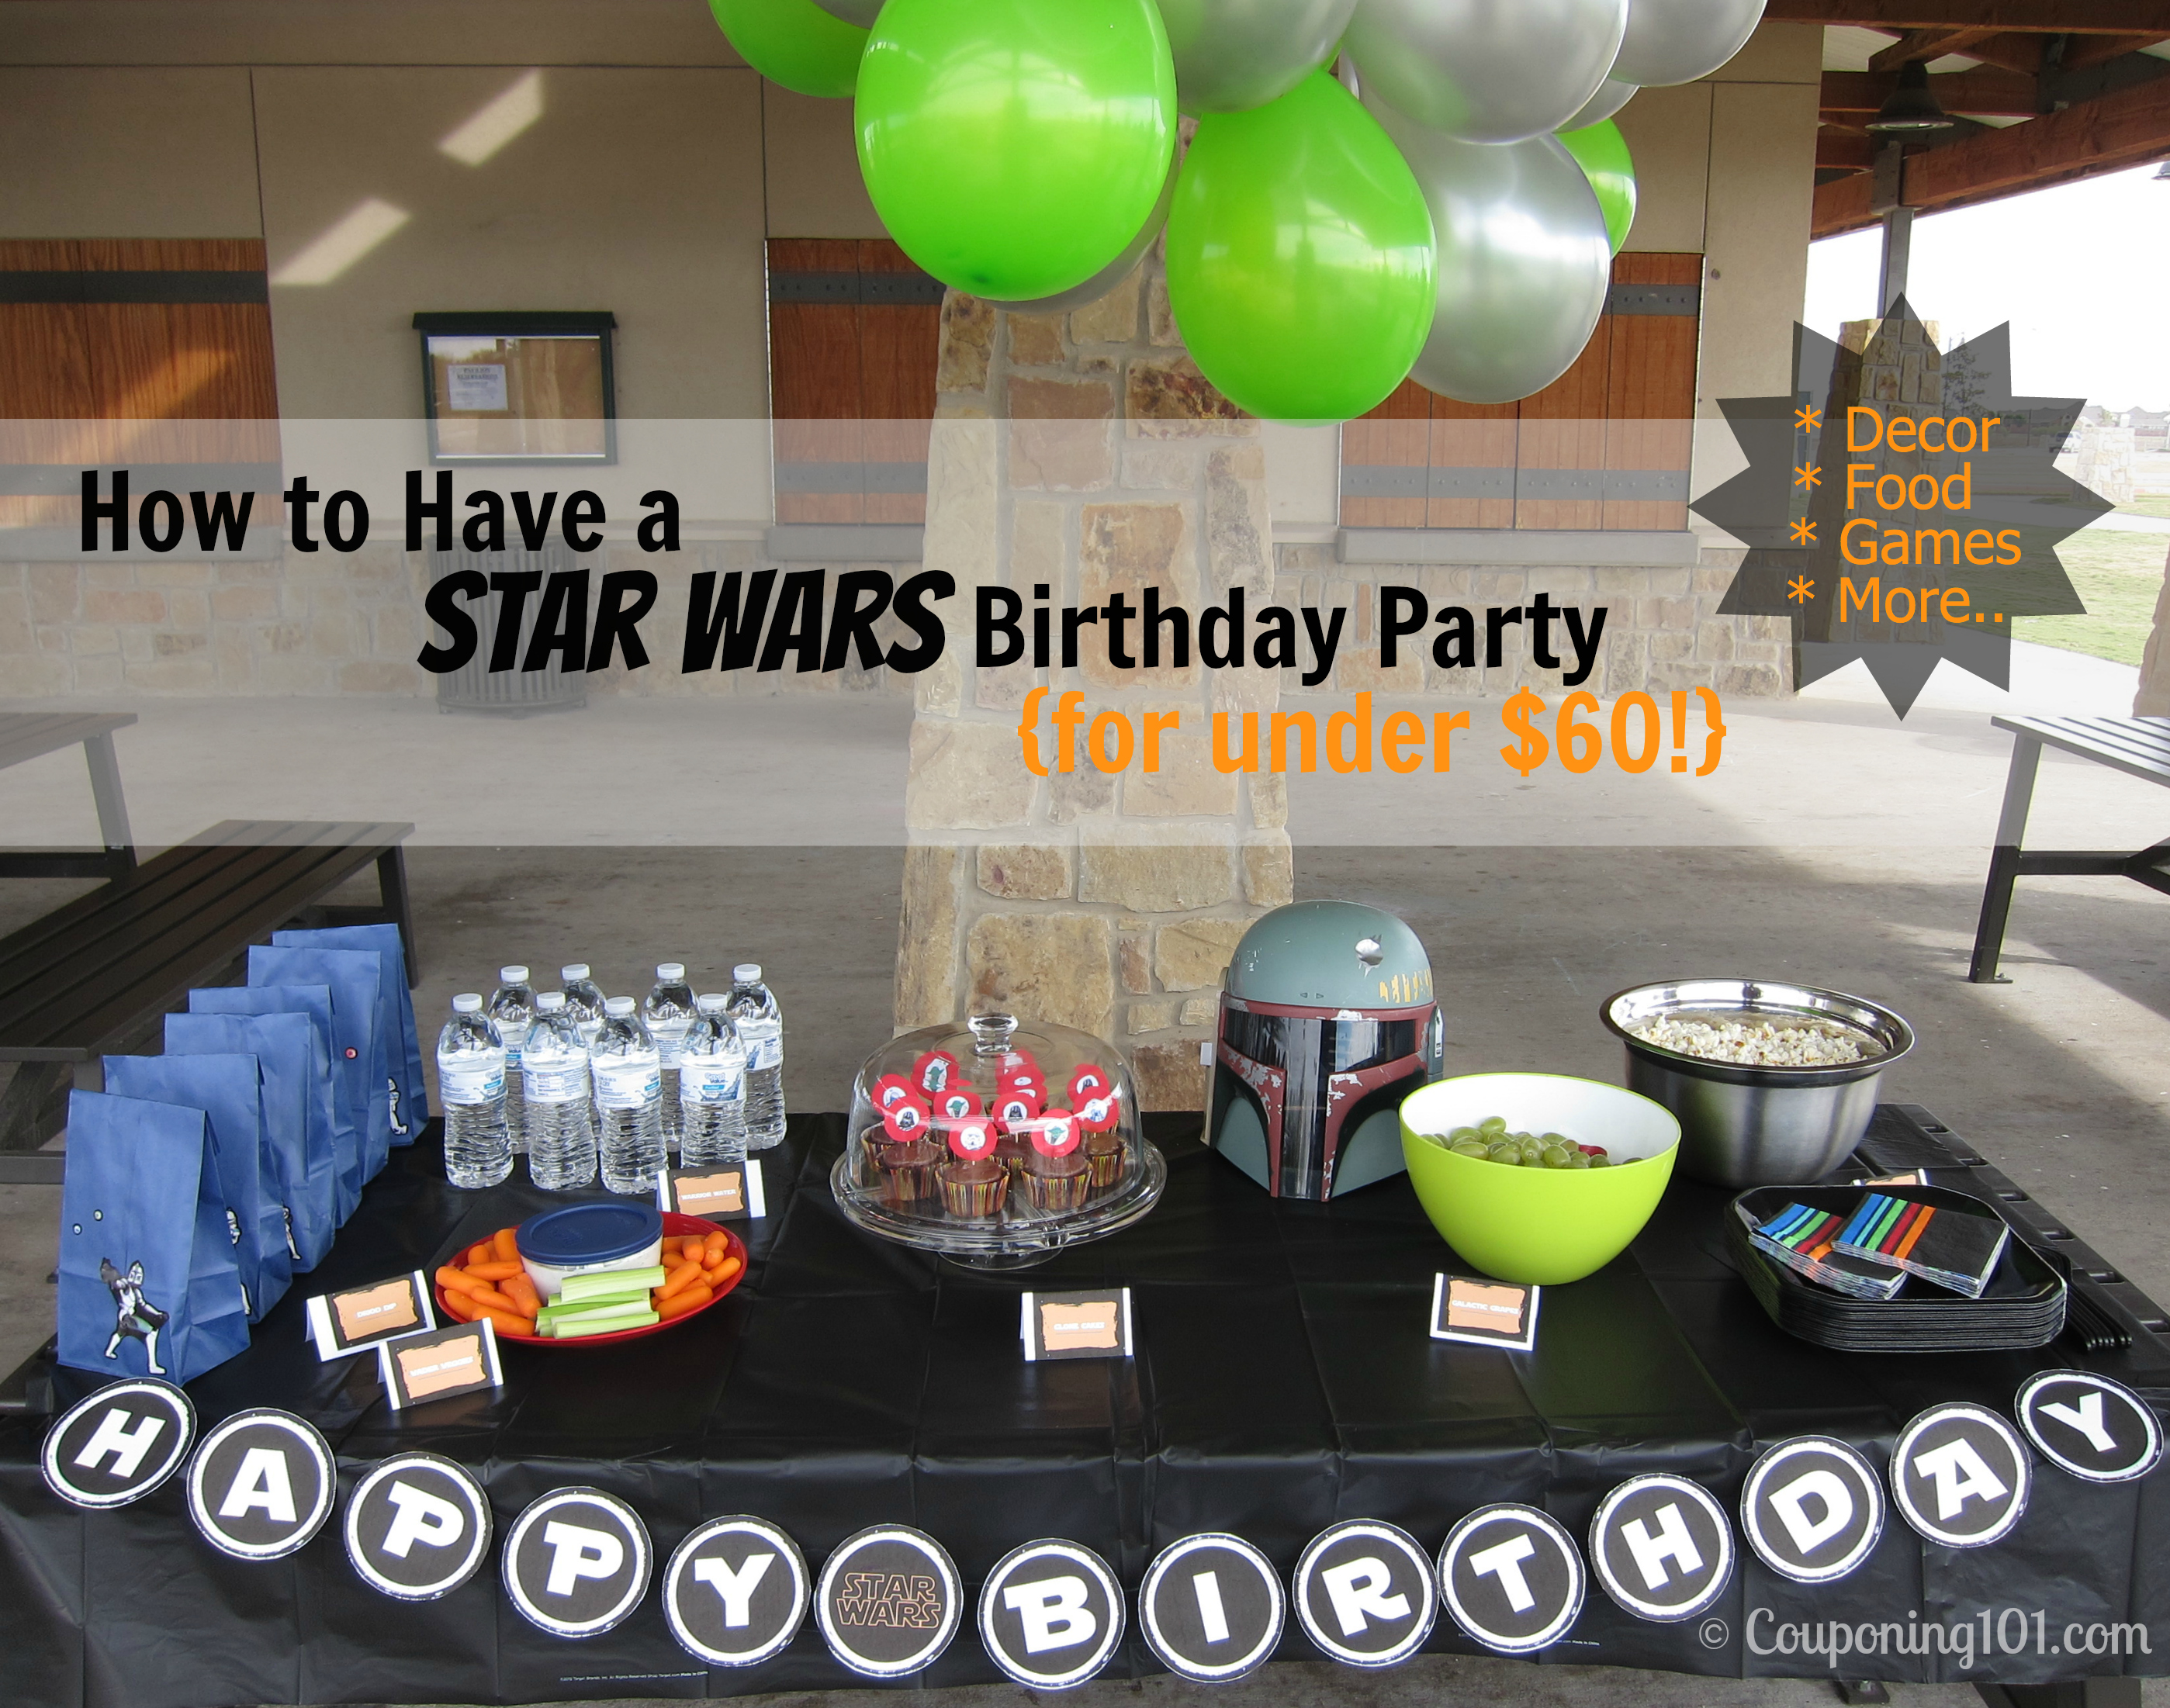 Sophisticated How To Have A Star Wars Party Under Couponing Star Wars Party Ideas Under Ideas Food How To Have A Star Wars Birthday Party 12 Year S Star Wars Party Ideas Uk baby Star Wars Party Ideas